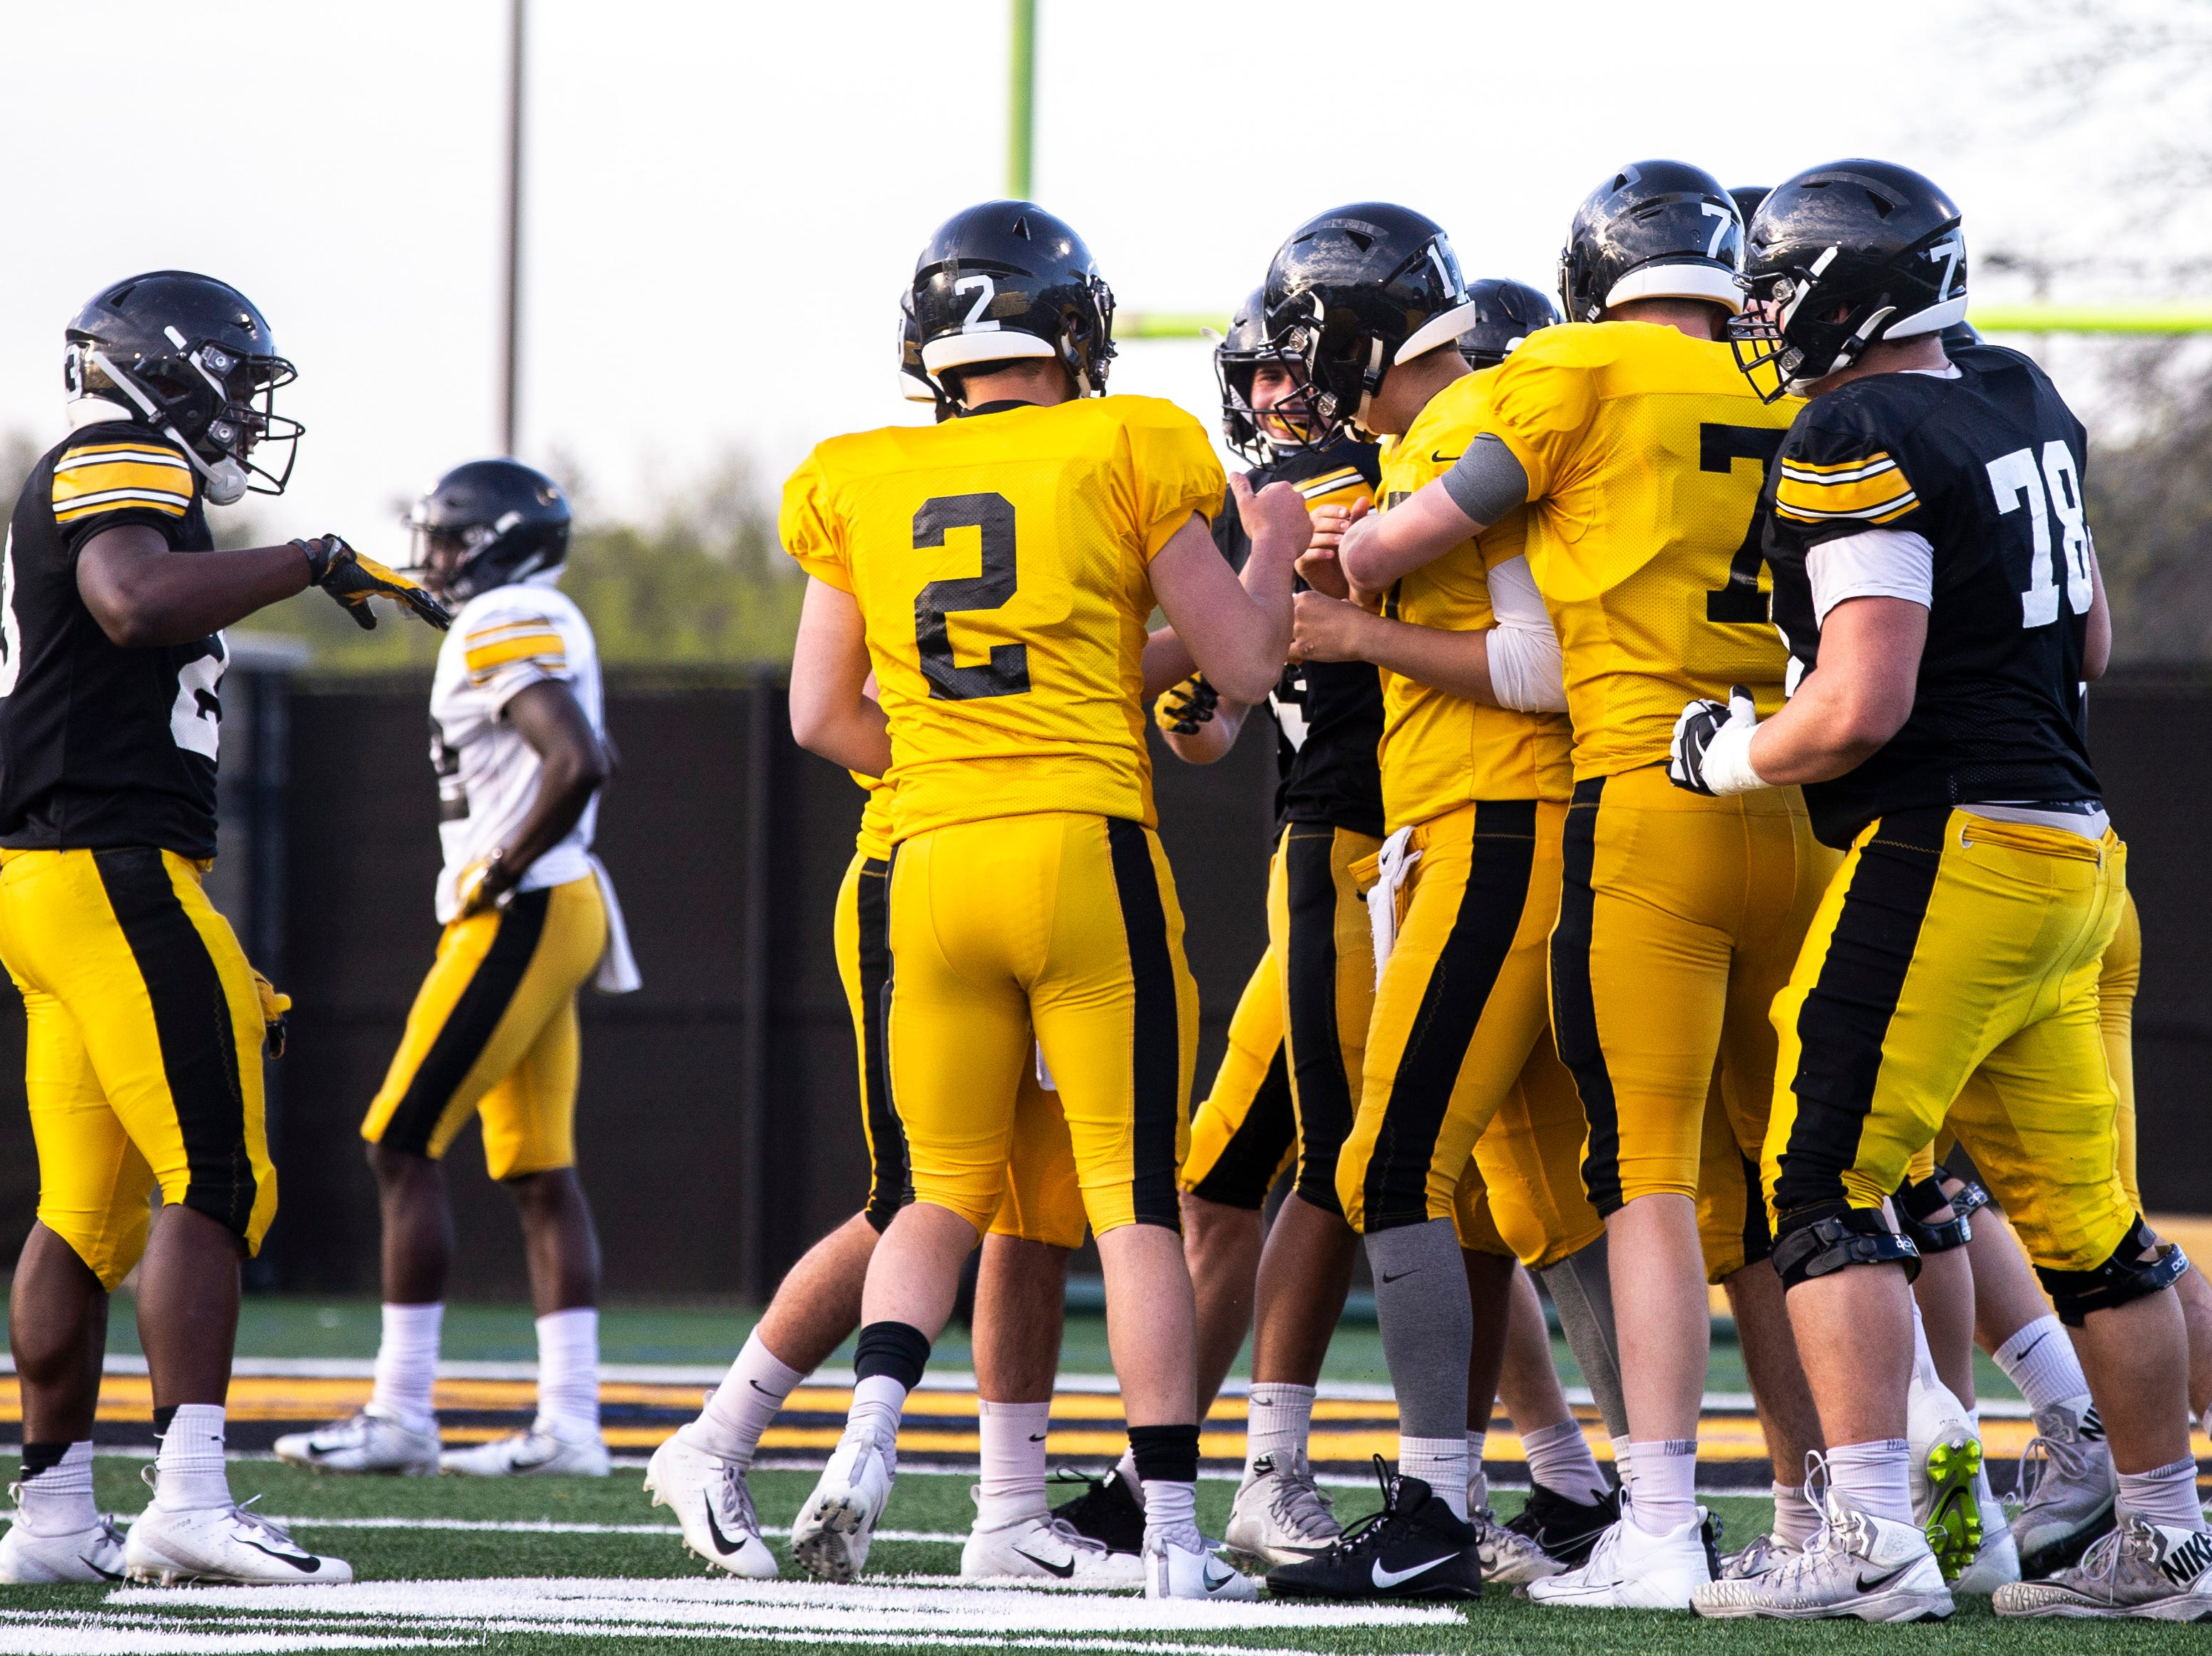 Iowa quarterback Ryan Schmidt (17) gets embraced by fellow quarterbacks Spencer Petras (7) and Peyton Mansell (2) after throwing a touchdown pass on the final play during the final spring football practice, Friday, April 26, 2019, at the University of Iowa outdoor practice facility in Iowa City, Iowa.